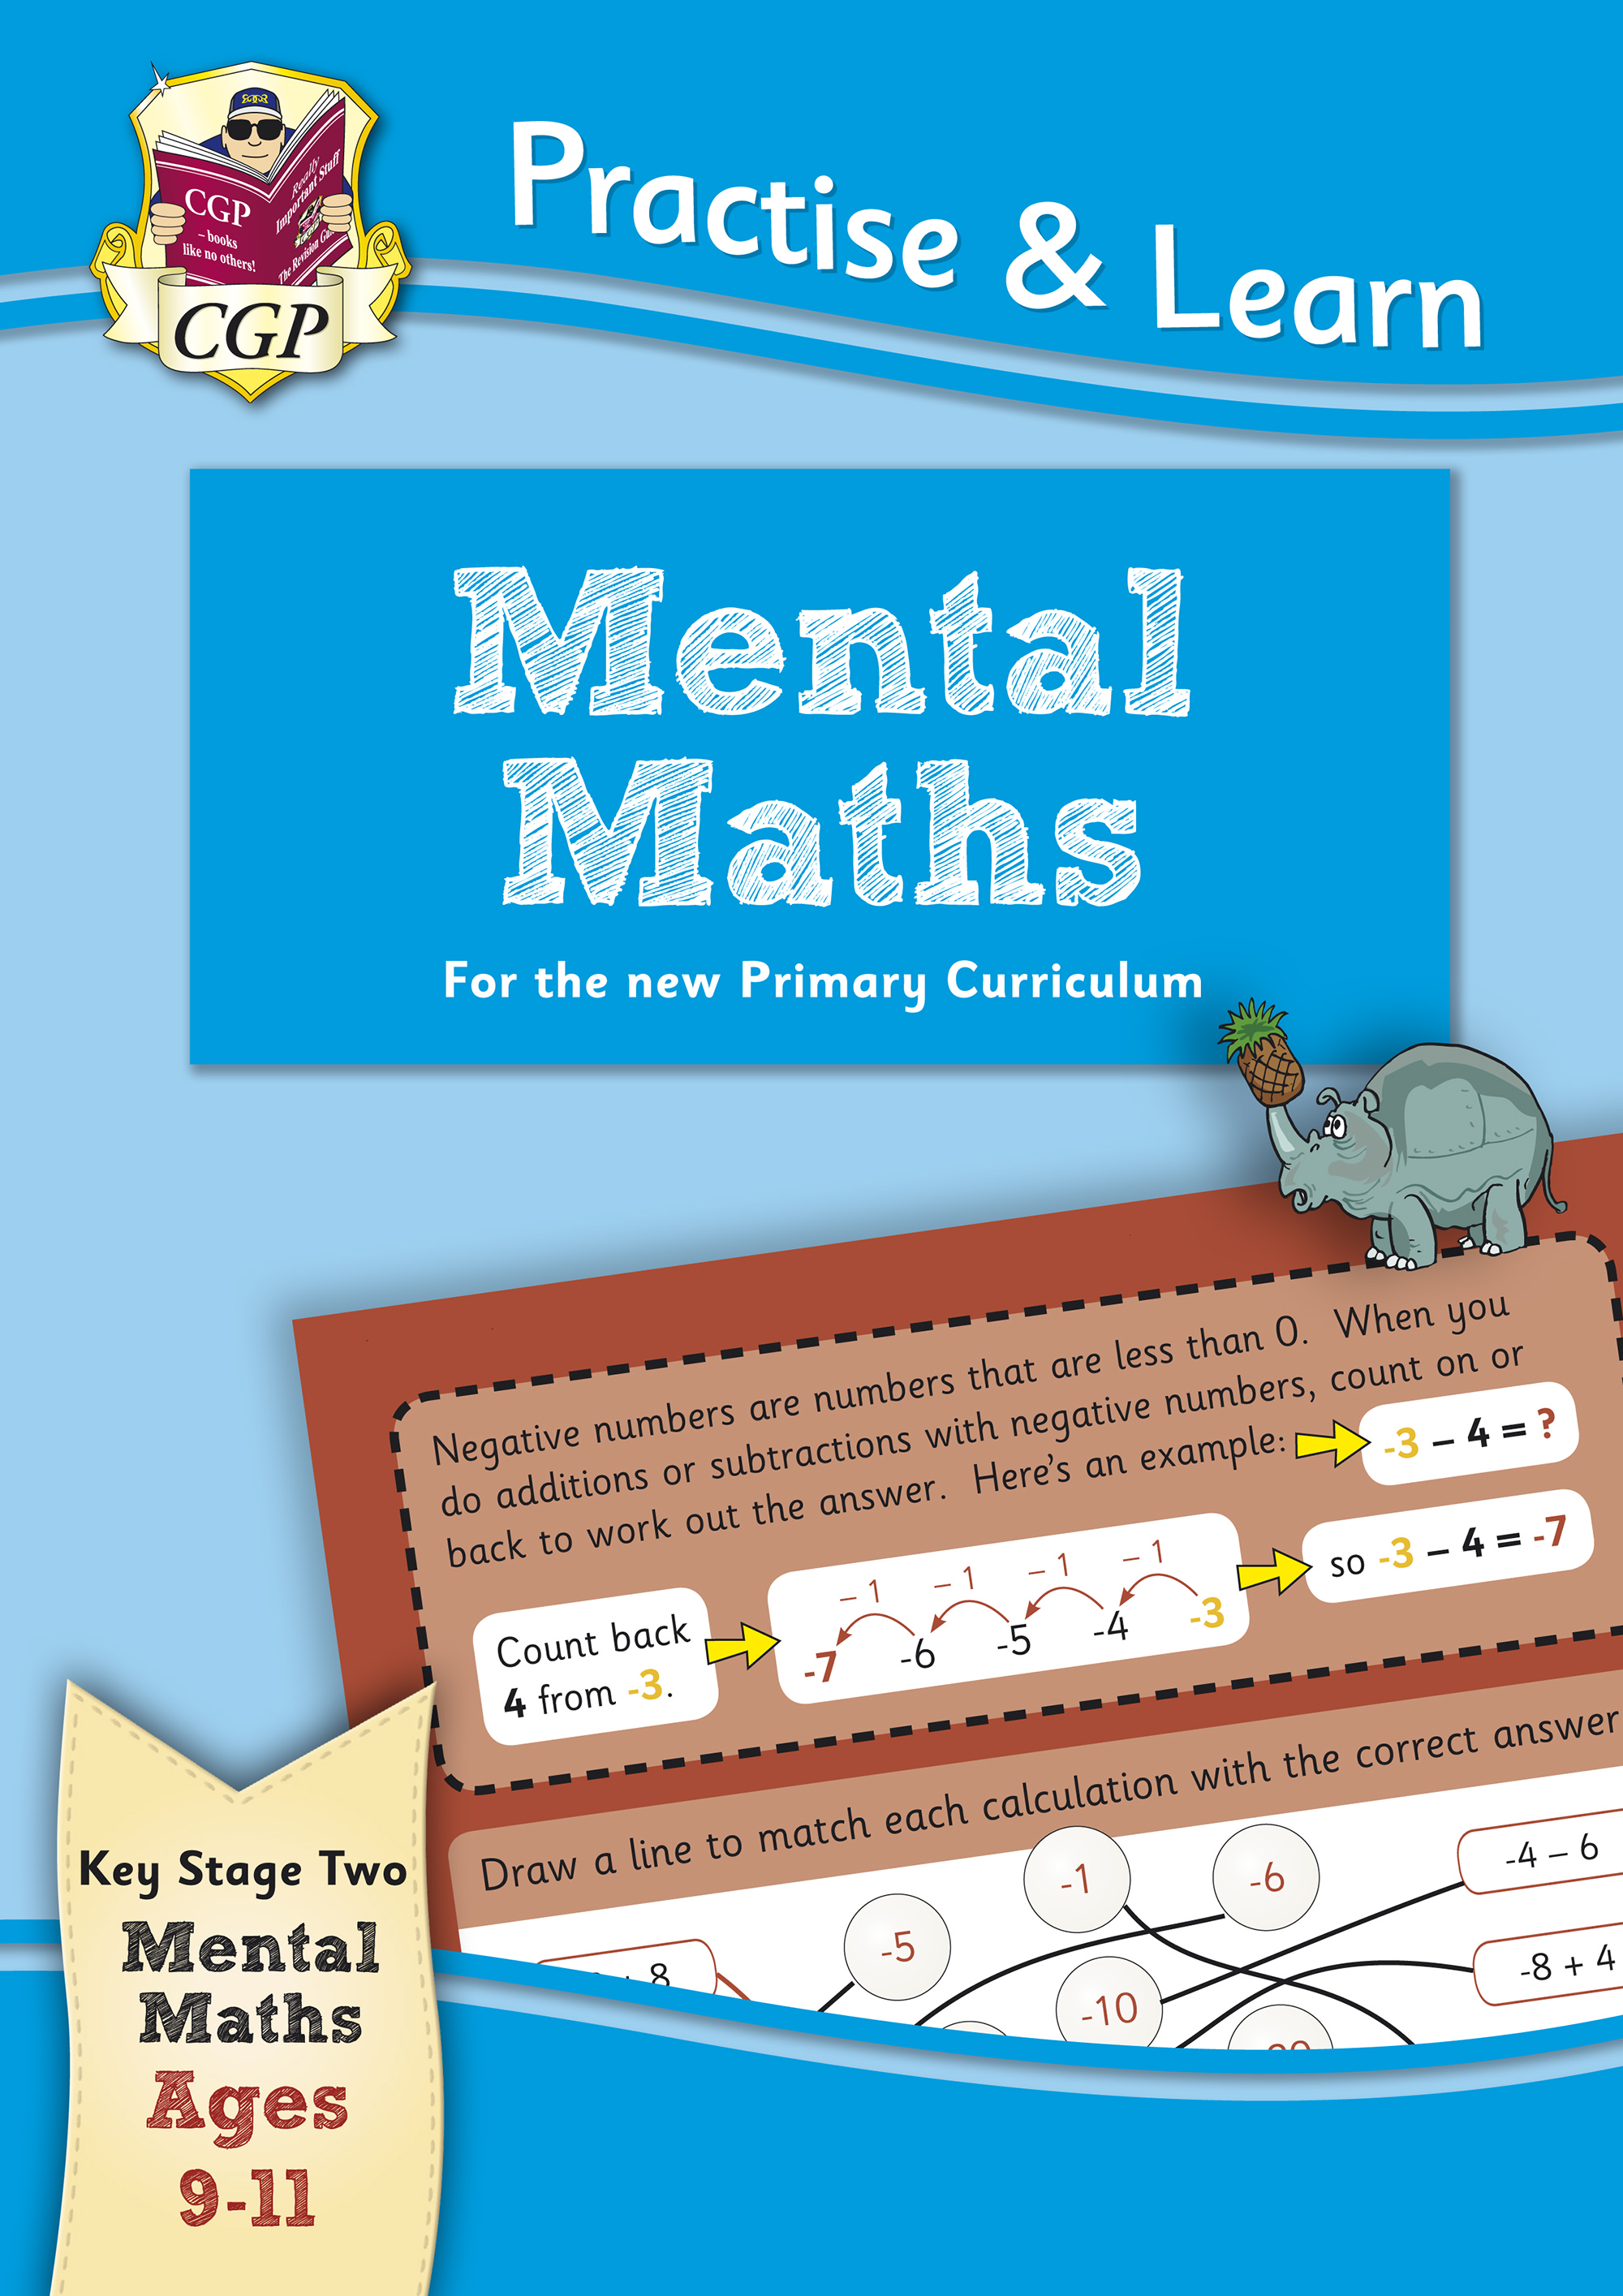 MP6MA22 - New Curriculum Practise & Learn: Mental Maths for Ages 9-11